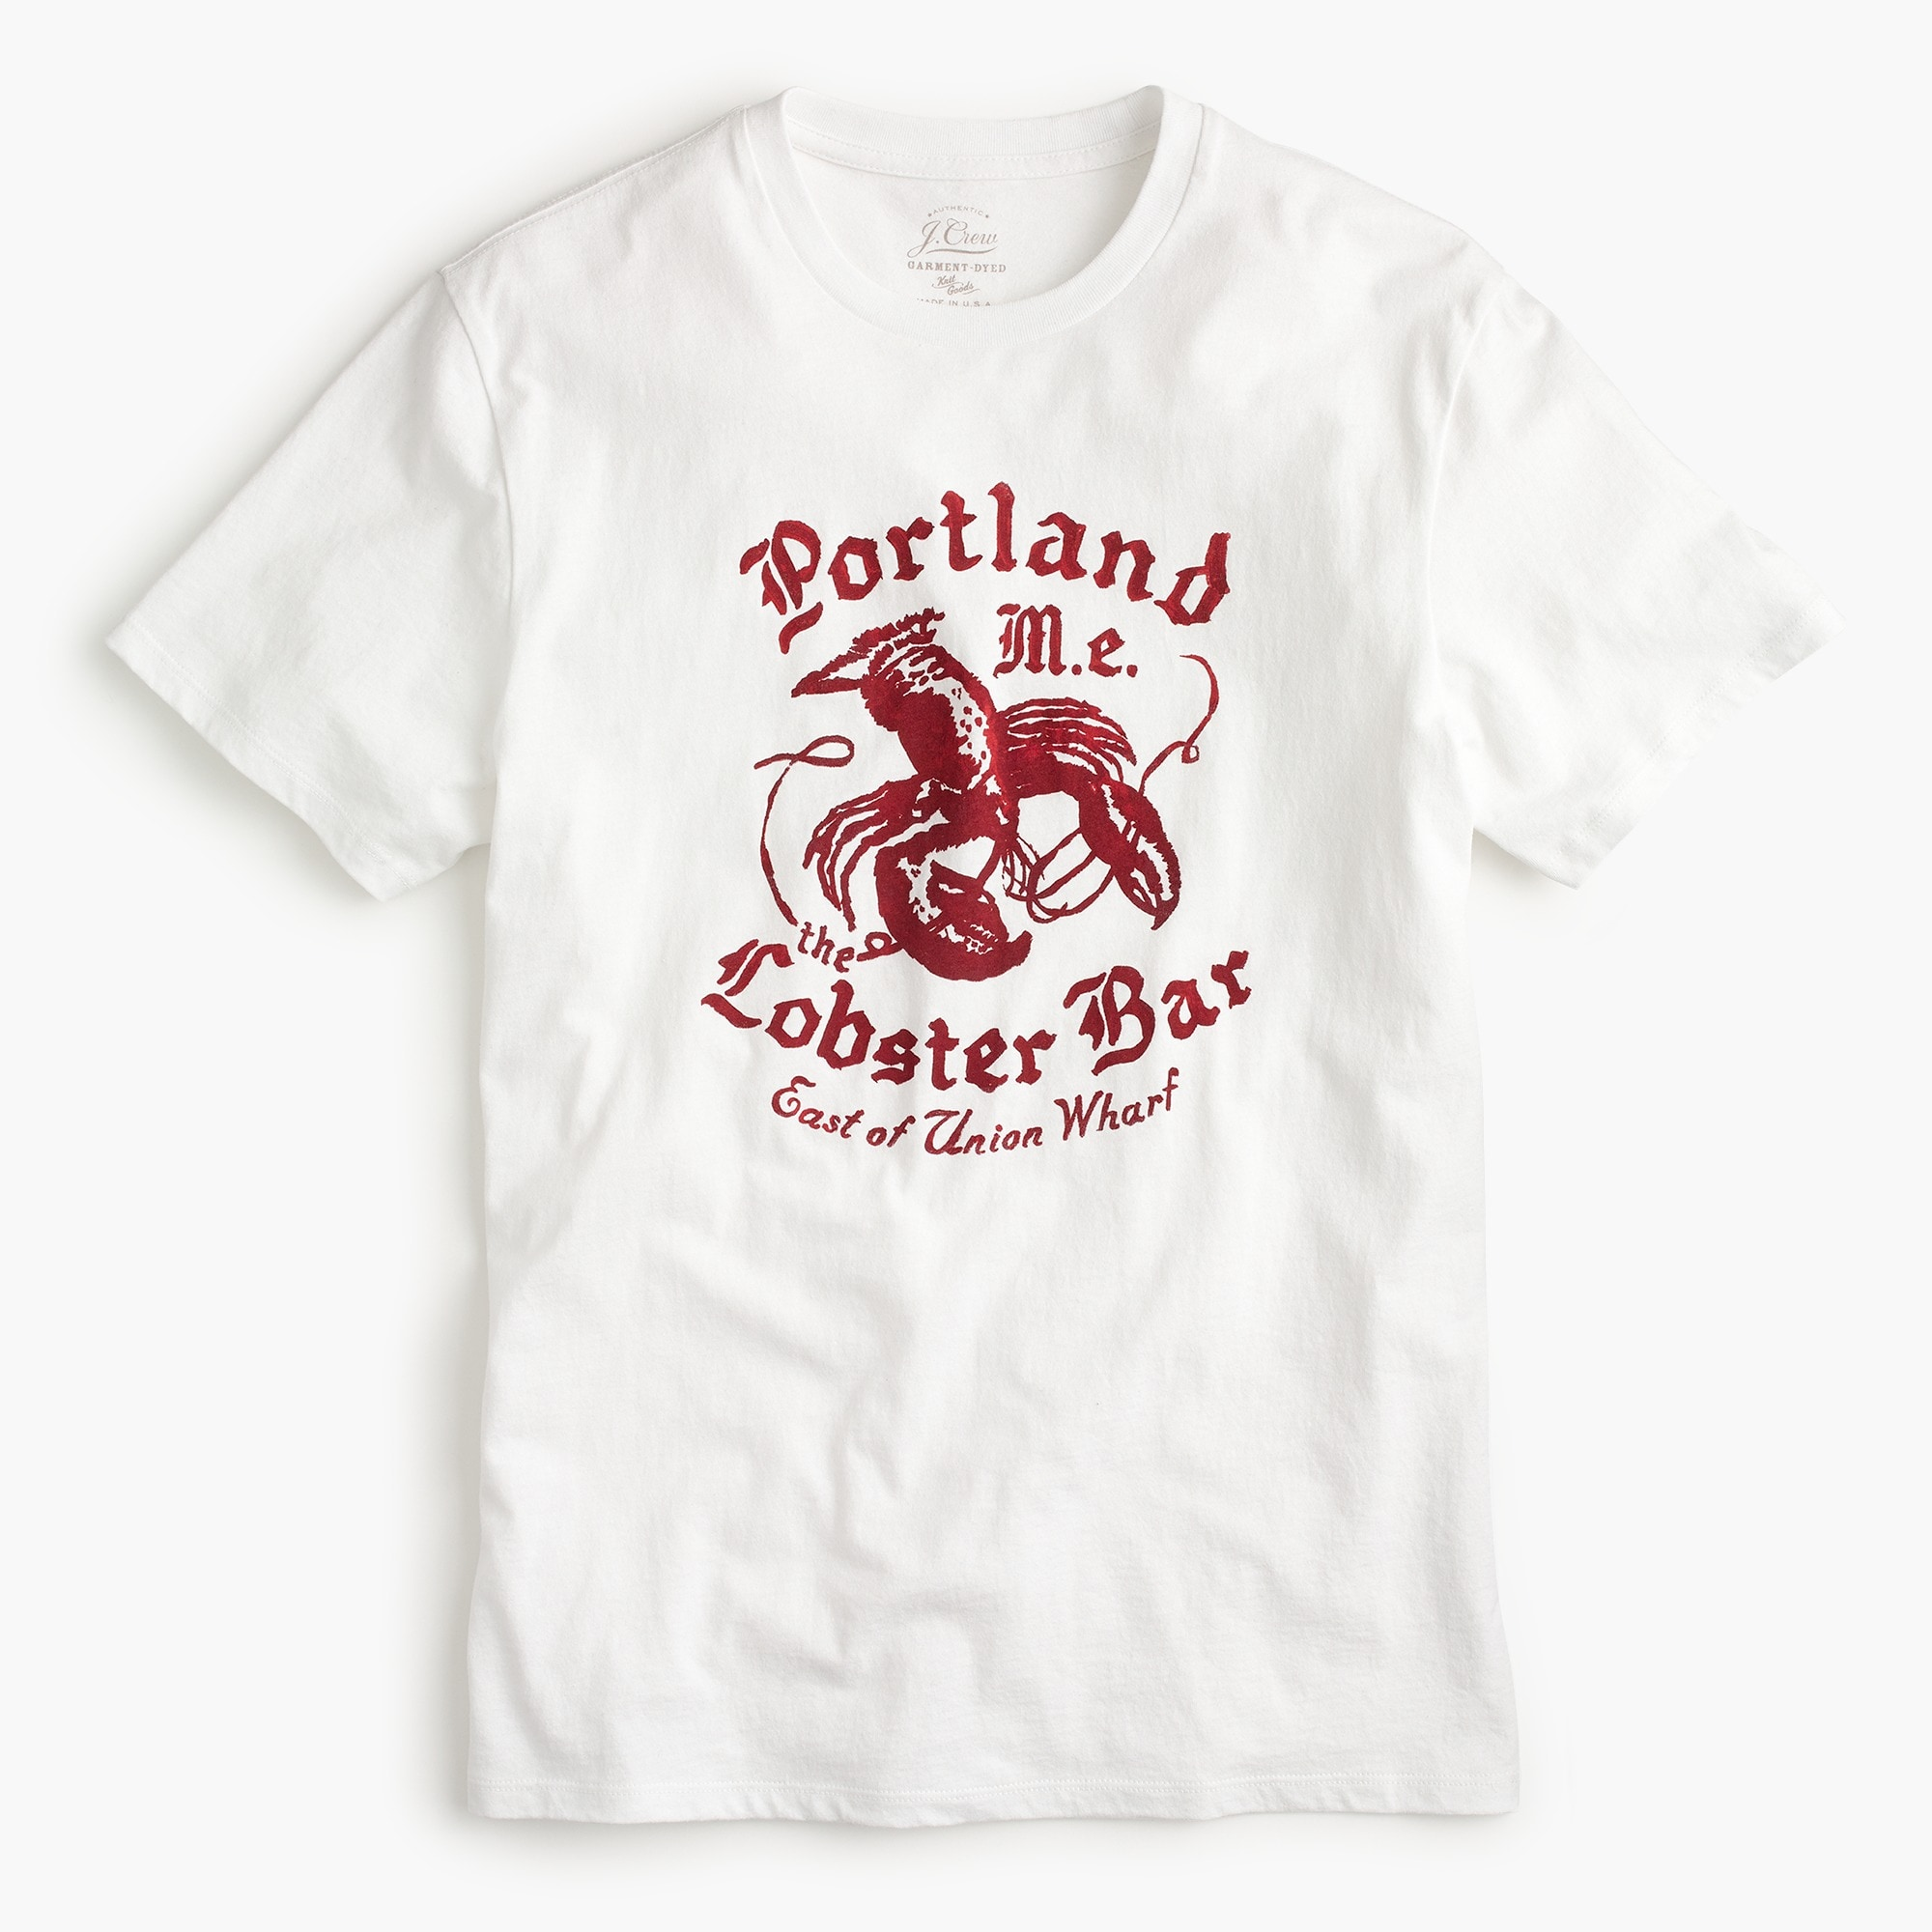 Image 1 for Portland Lobster Bar graphic T-Shirt